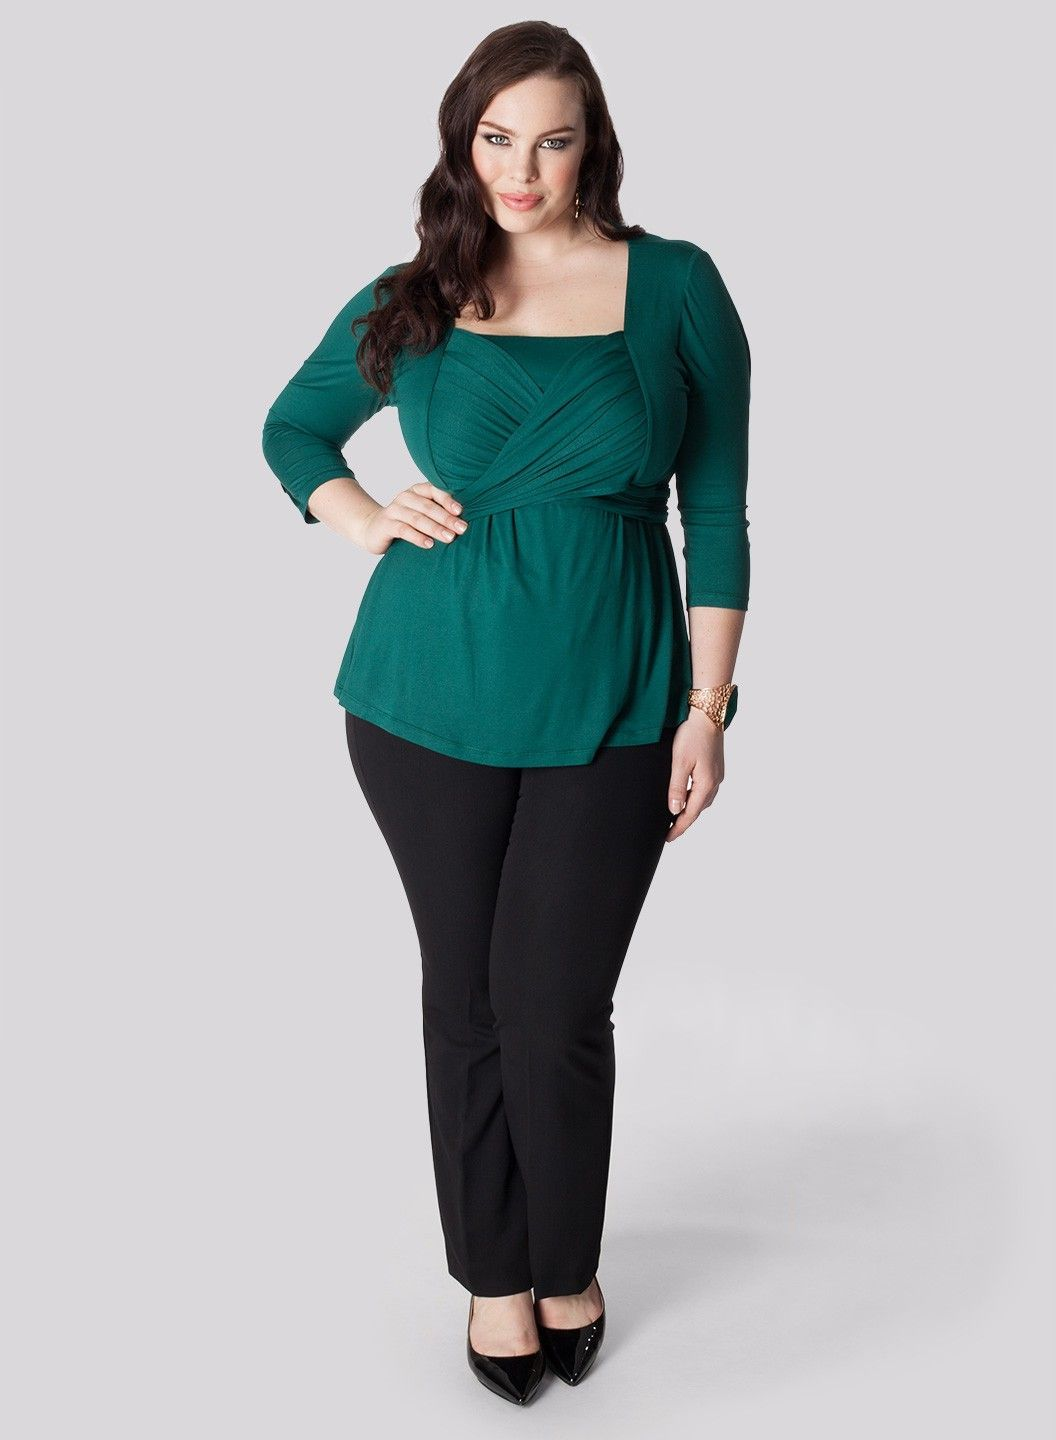 women's plus size petite business casual clothing | women , plus ...